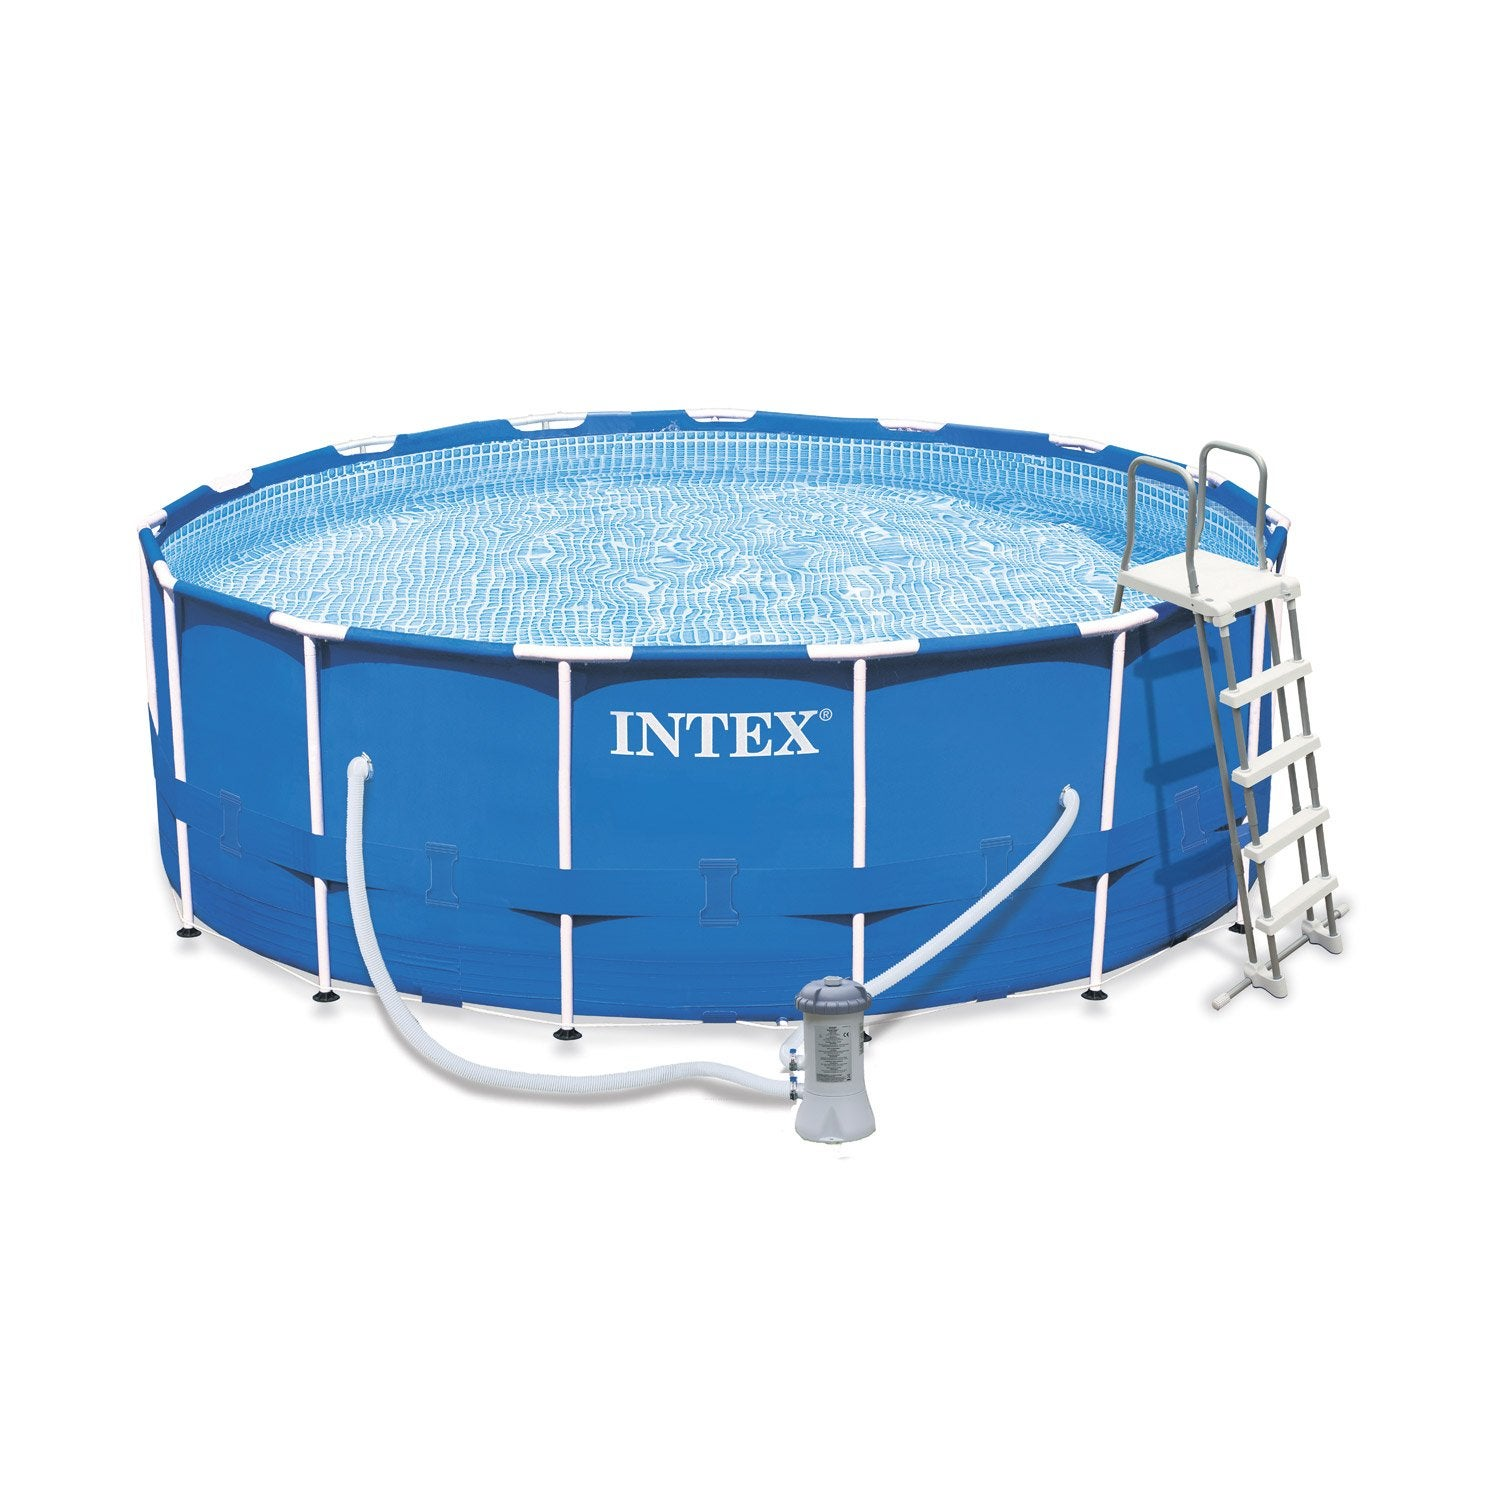 Piscine hors sol autoportante tubulaire metal frame intex for Piscine hors sol plastique